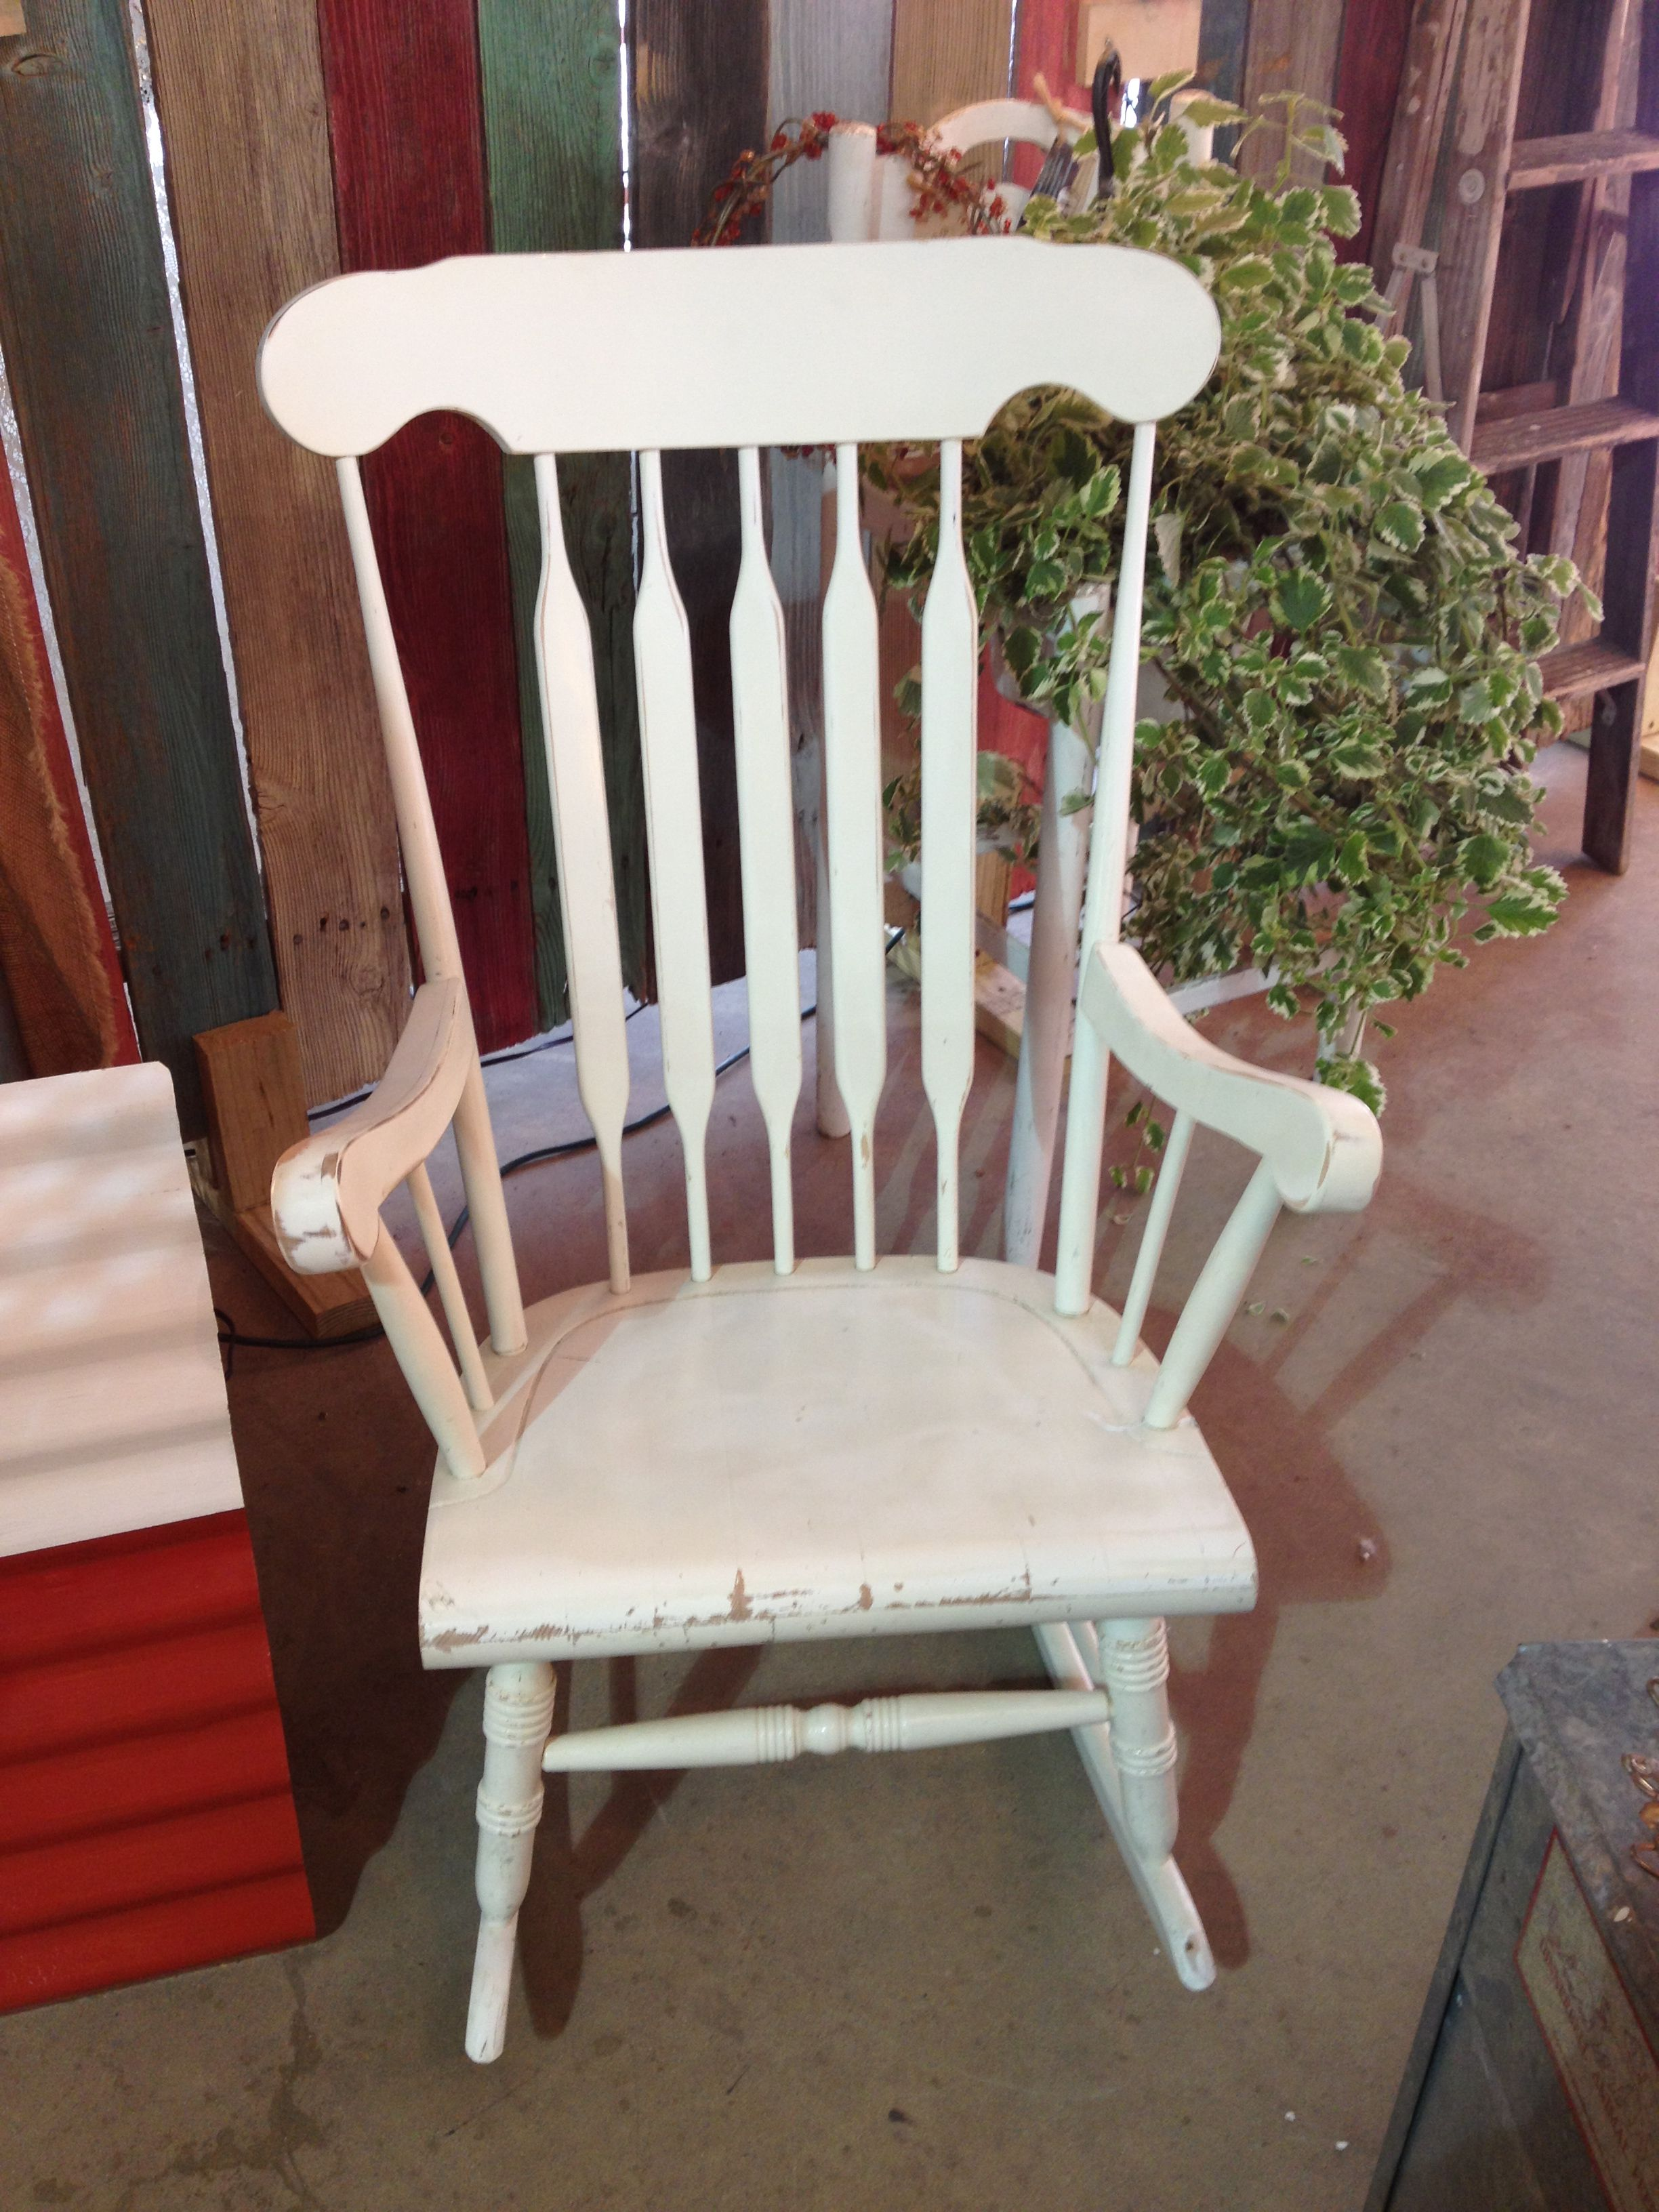 My Wooden Rocking Chair Now How Should I Paint It